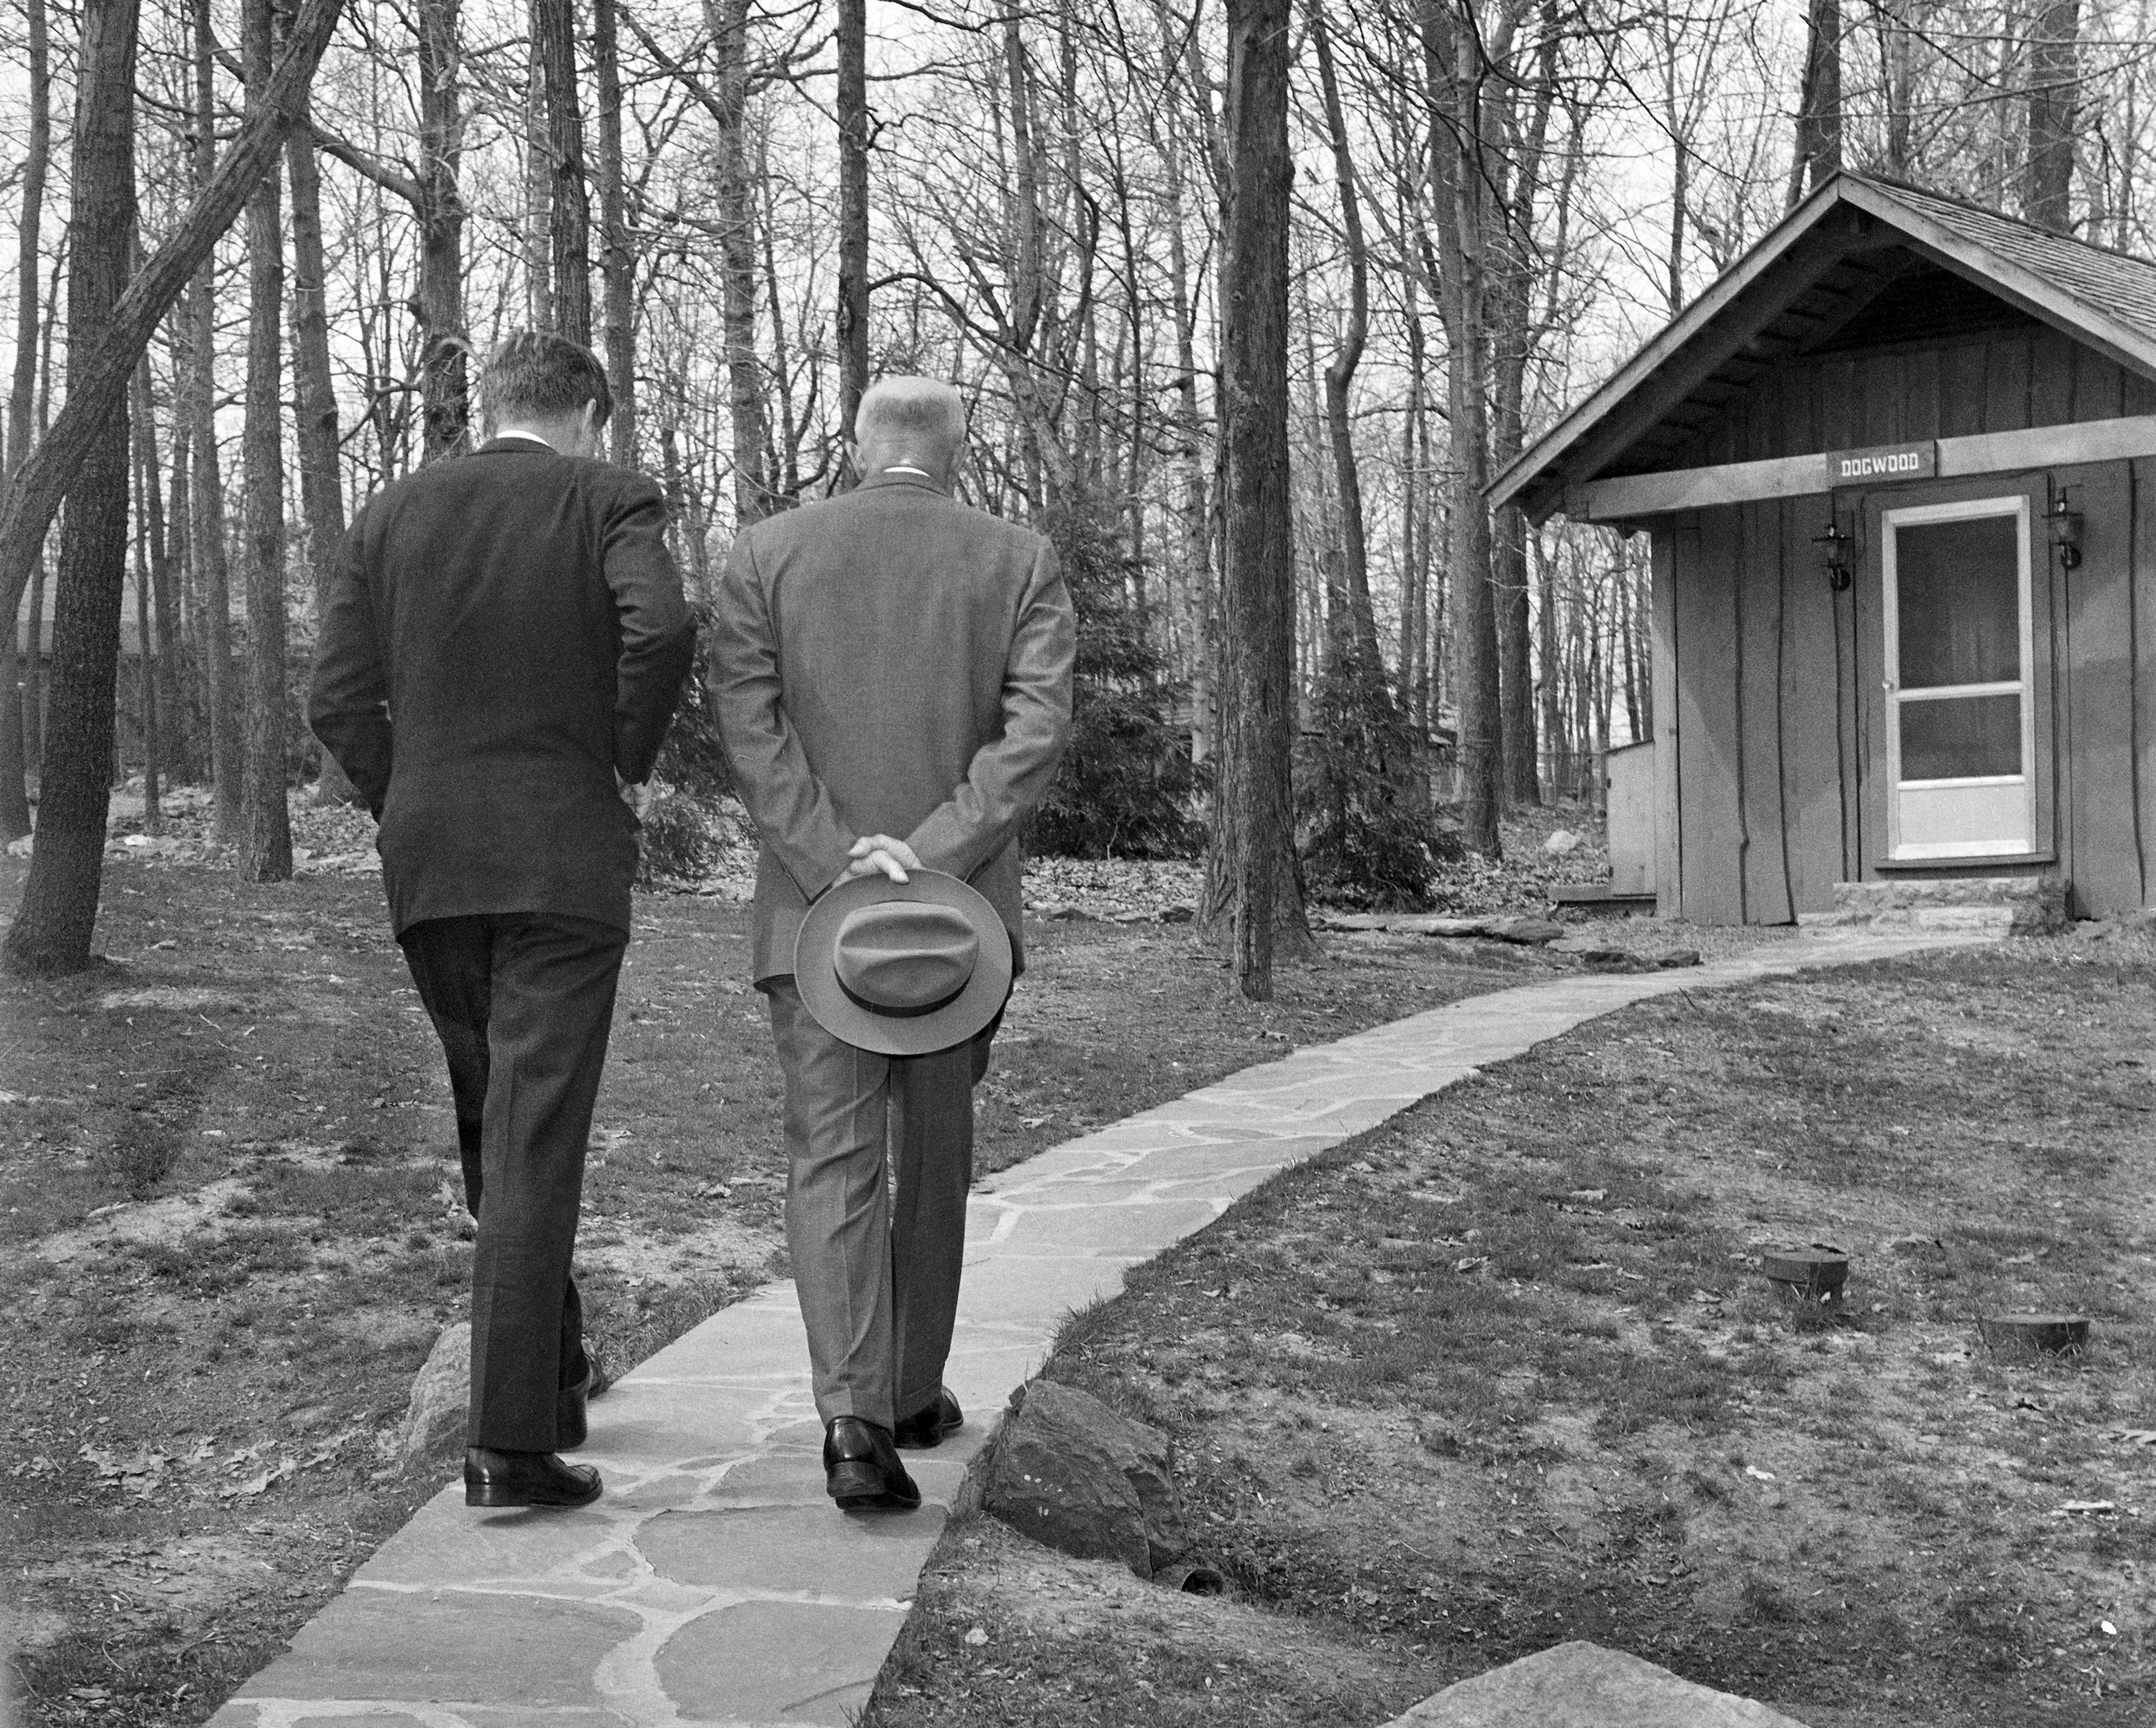 With their heads bowed, President John F. Kennedy, left, walks along a path at Camp David near Thurmont, Md., with former President Dwight D. Eisenhower, April 22, 1961, as the two met to discuss the Bay of Pigs invasion. The photo was shot between the legs of a Secret Service agent. (AP Photo/Paul Vathis)